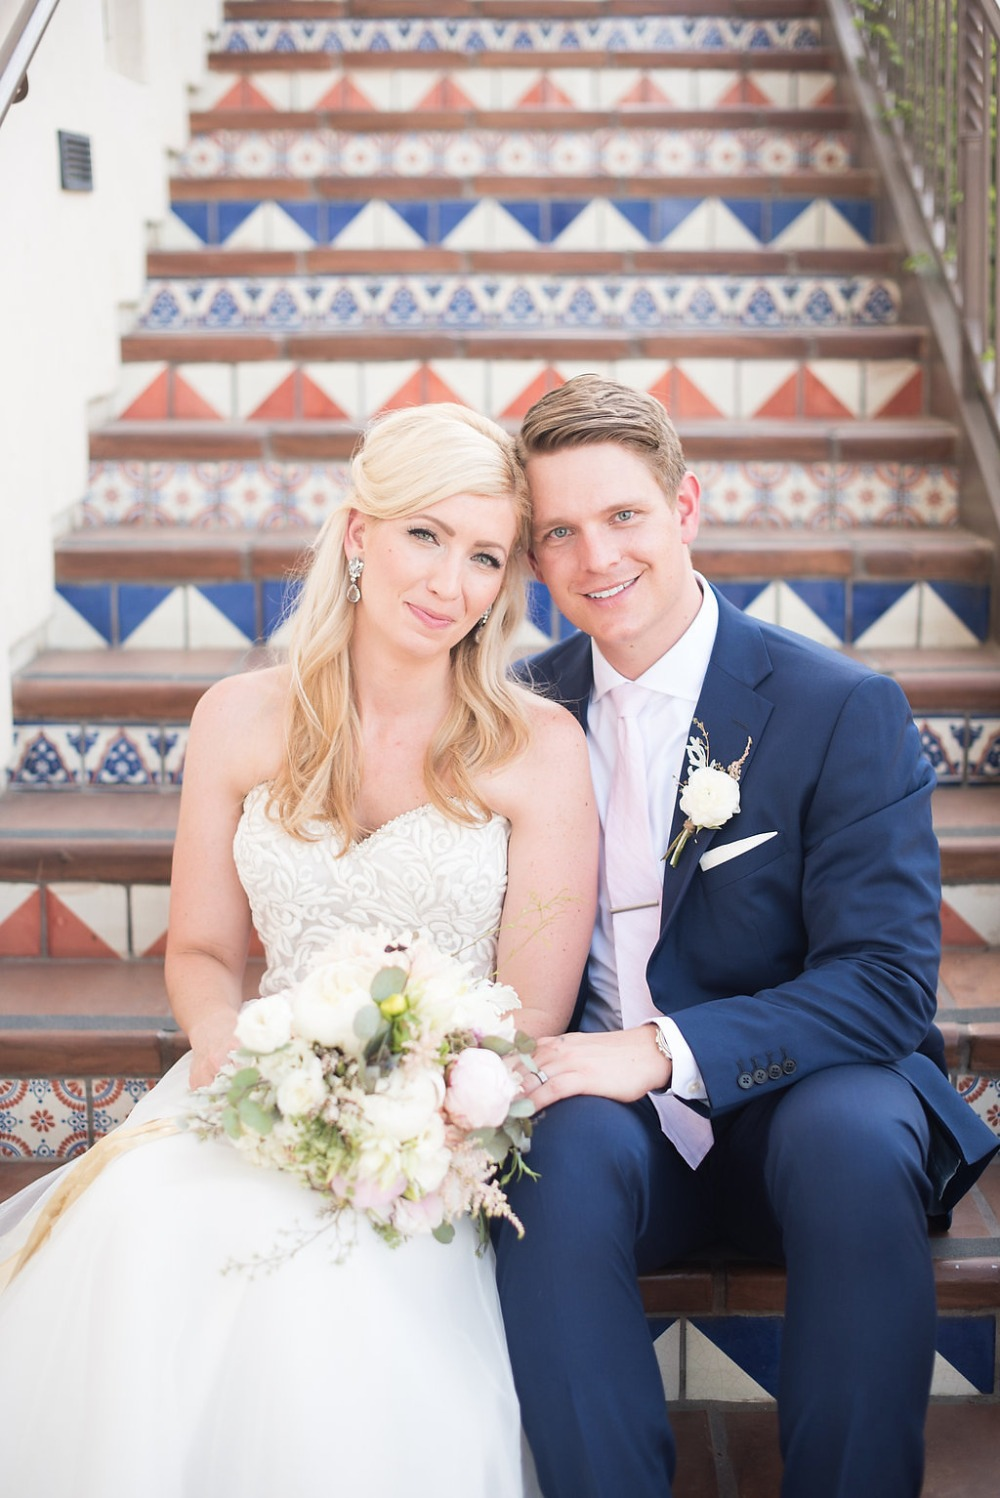 bride and groom in a stairwell